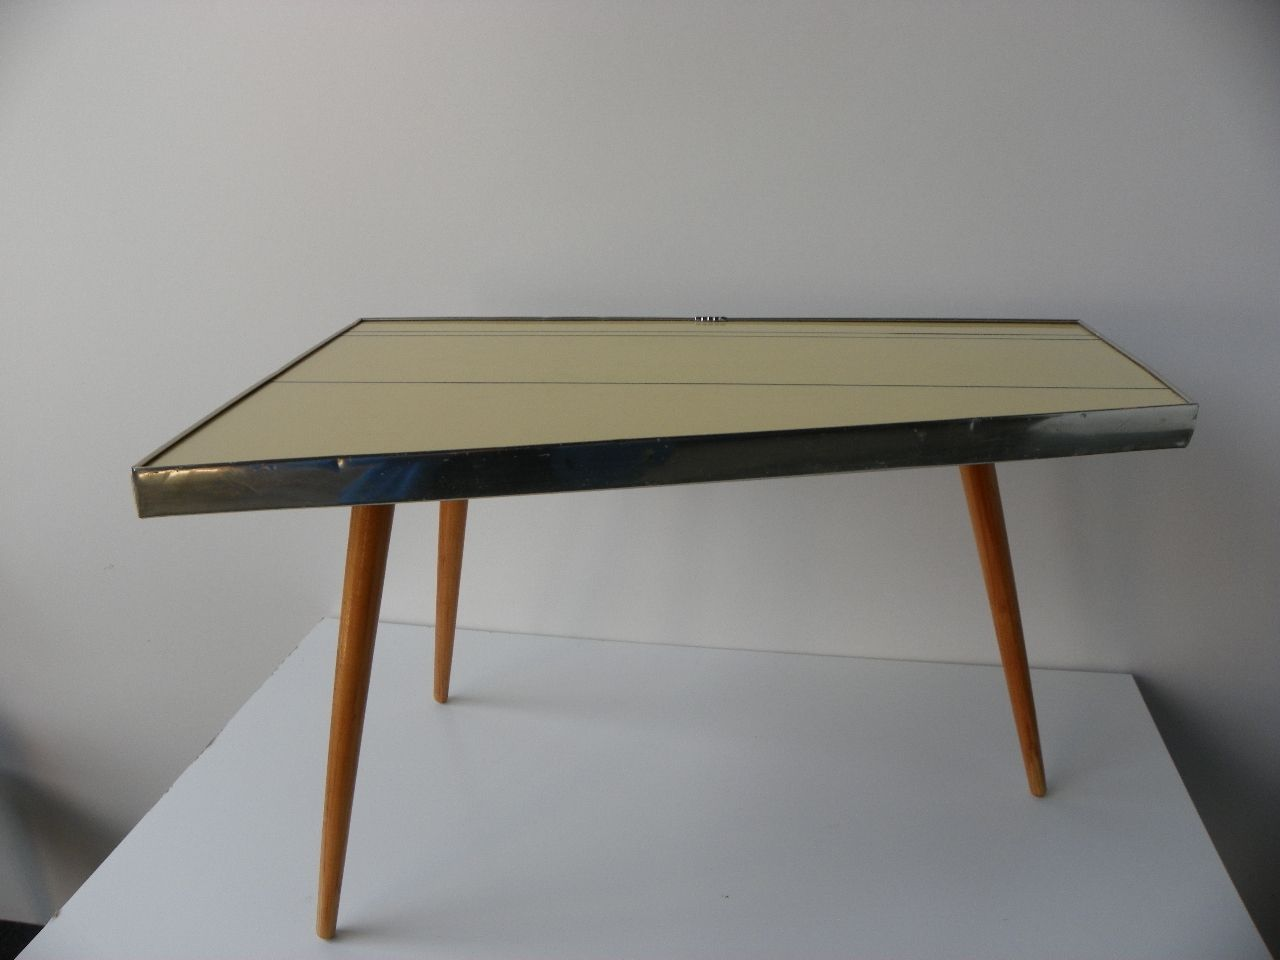 table d 39 appoint tr pied en formica 1960s en vente sur pamono. Black Bedroom Furniture Sets. Home Design Ideas